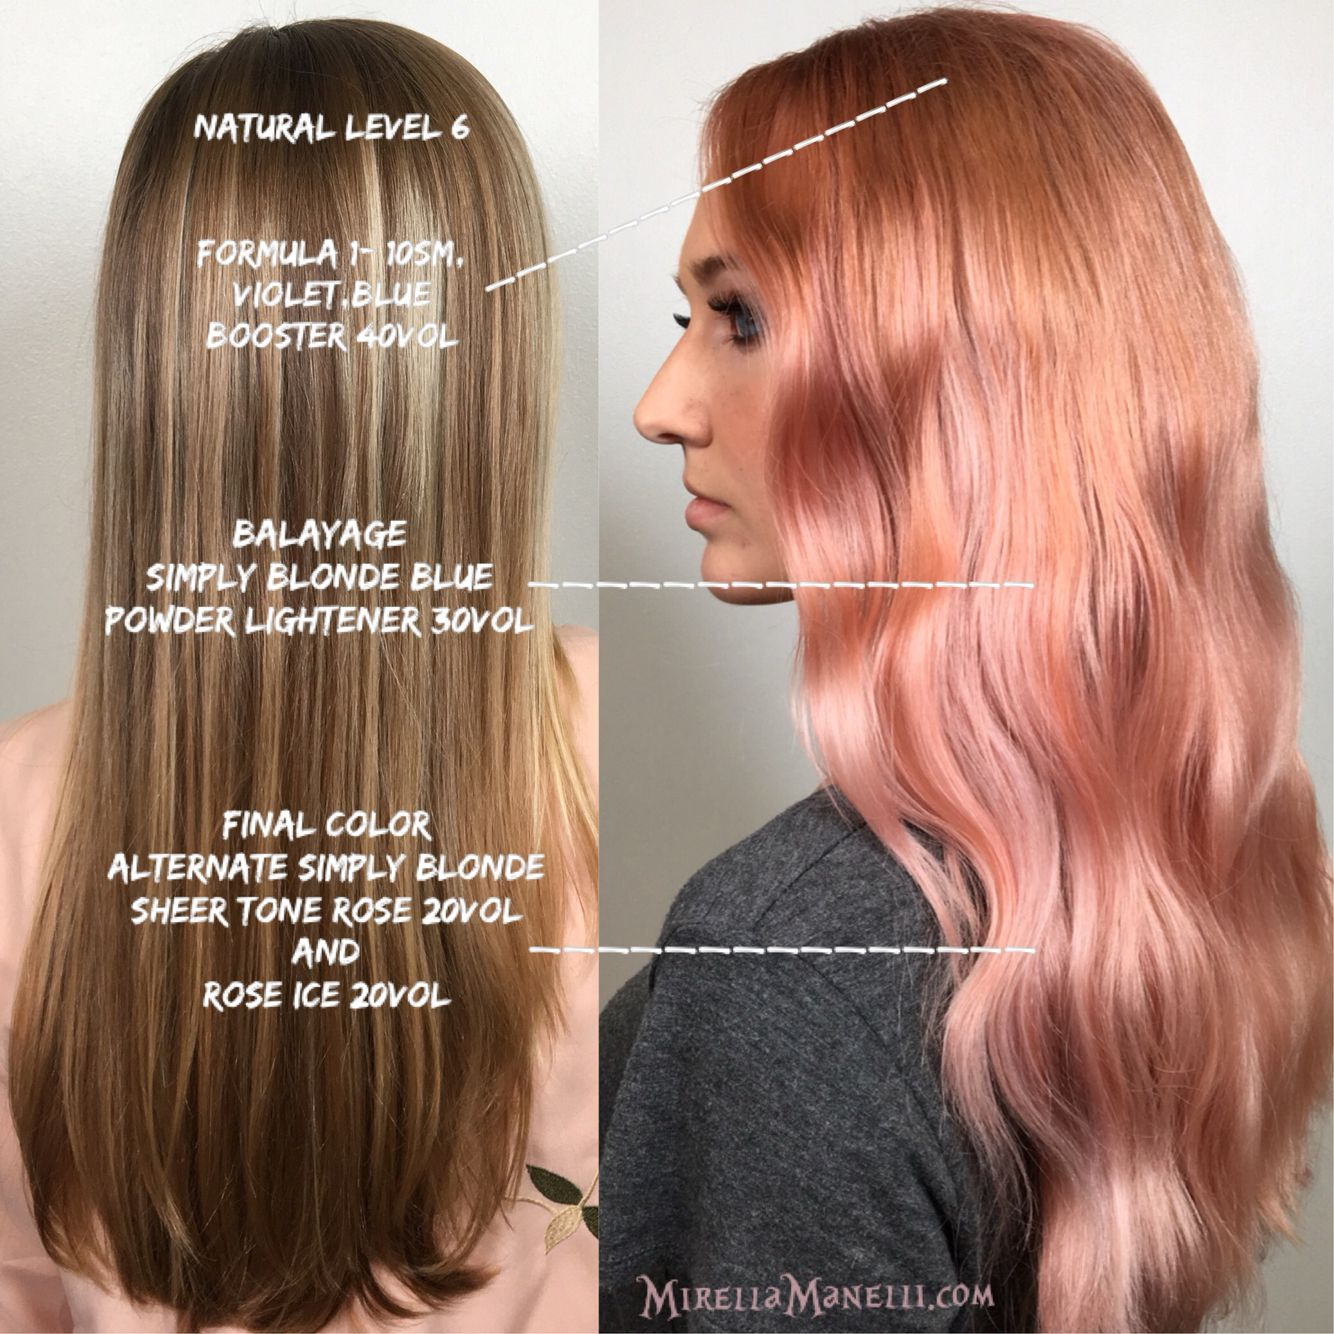 Kenra Simply Blonde With Rose Gold Hair Color Formulation And Step By Tutorial